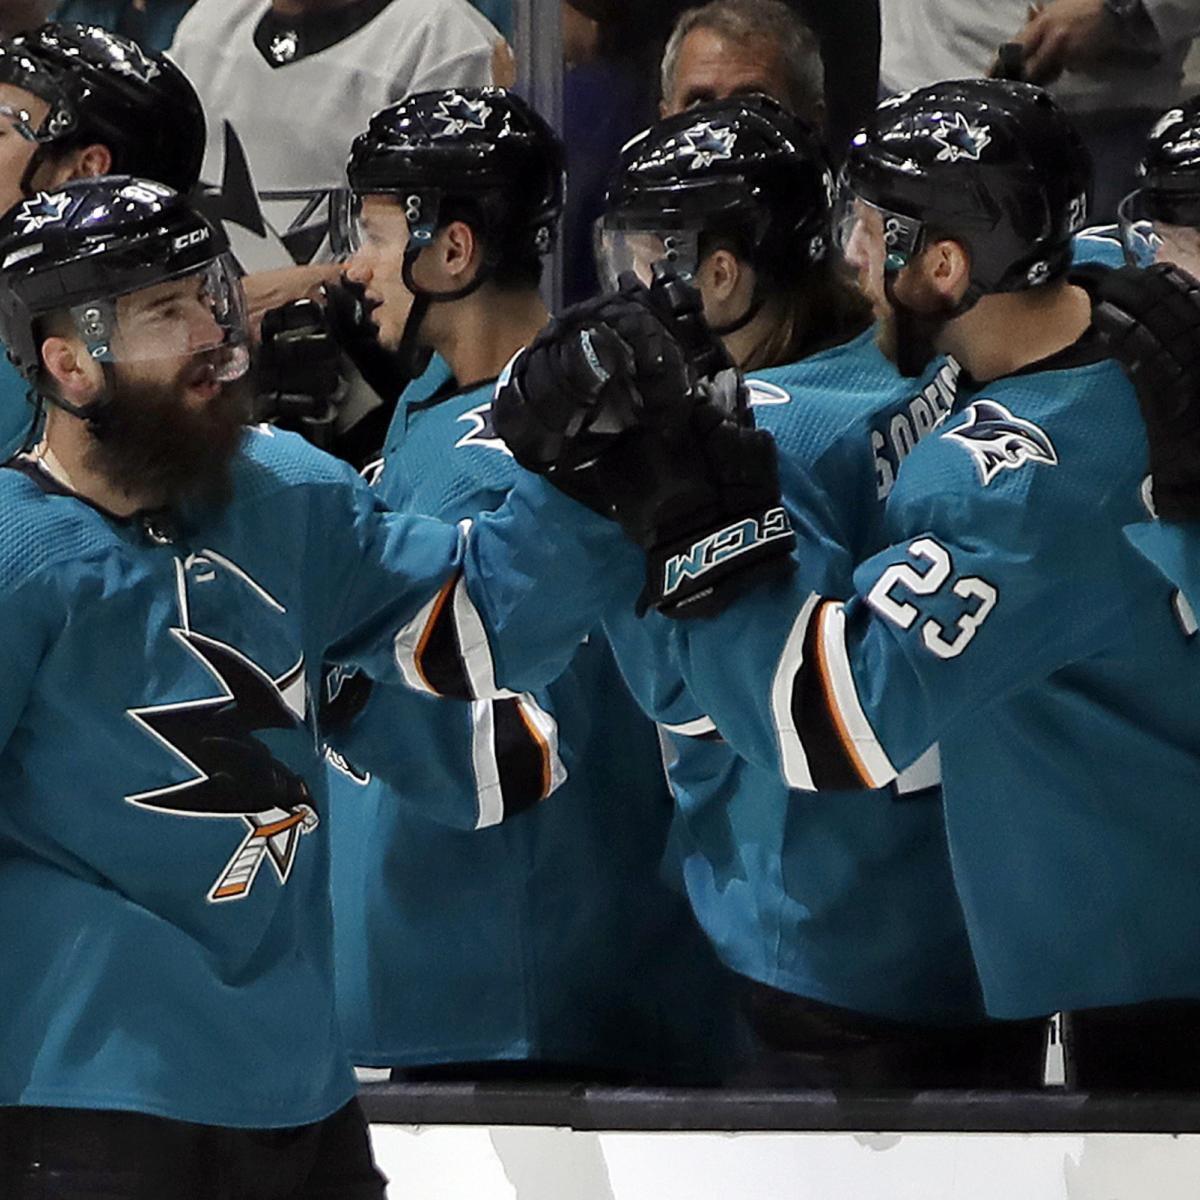 NHL Playoffs 2019: Schedule And Latest Odds For Stanley